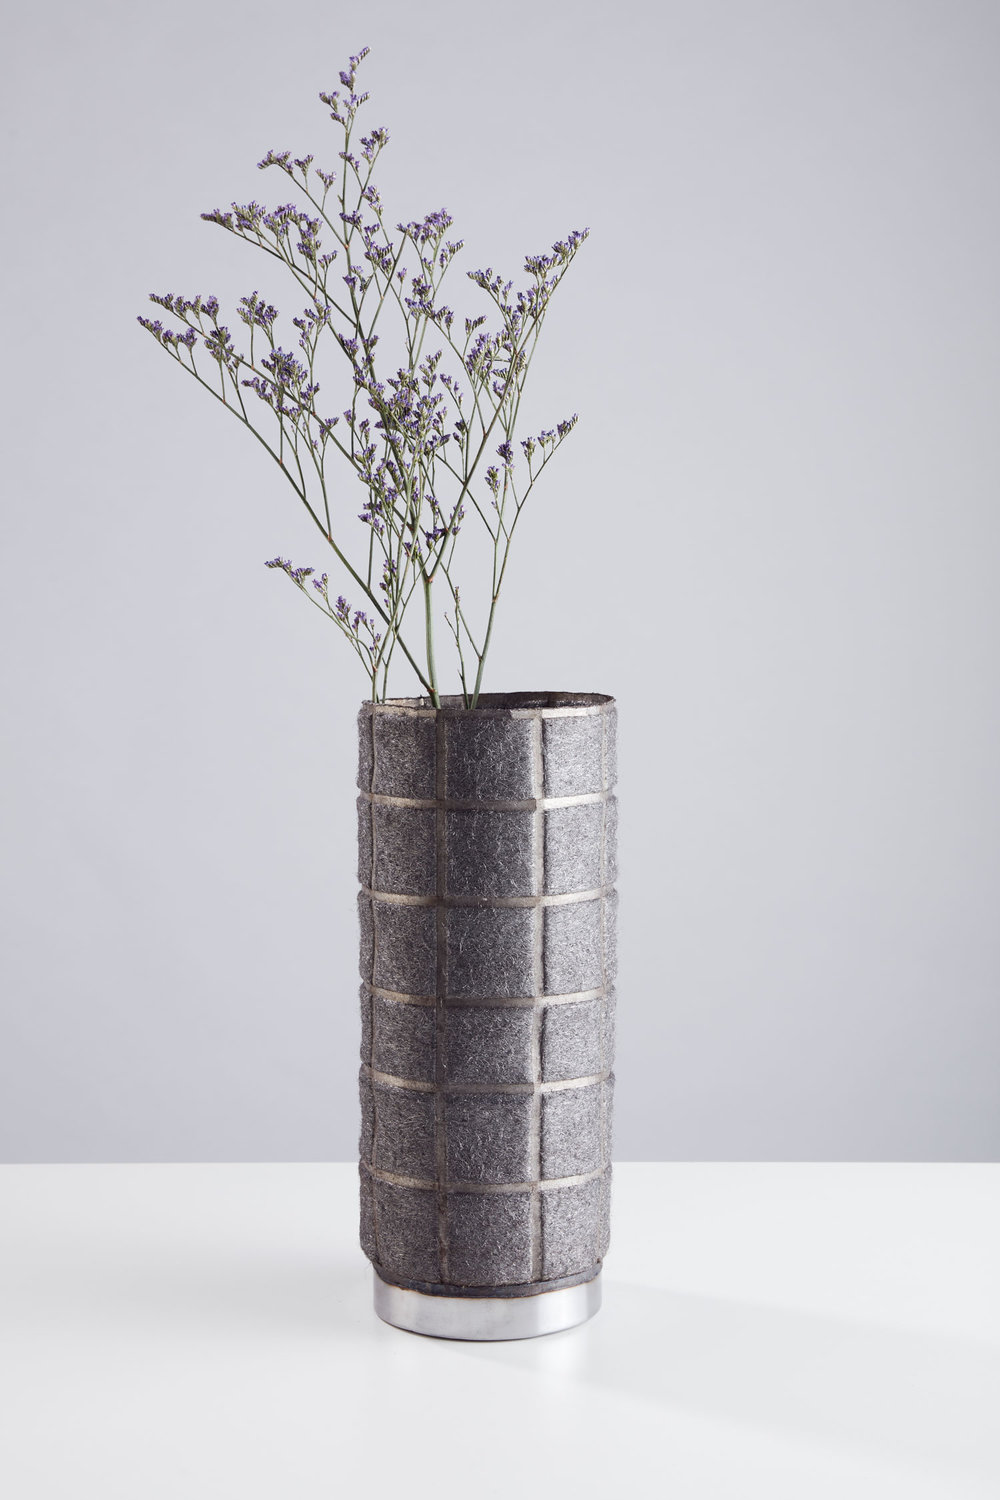 A vase from The Soft Side of Steel series  by Studio Ilio